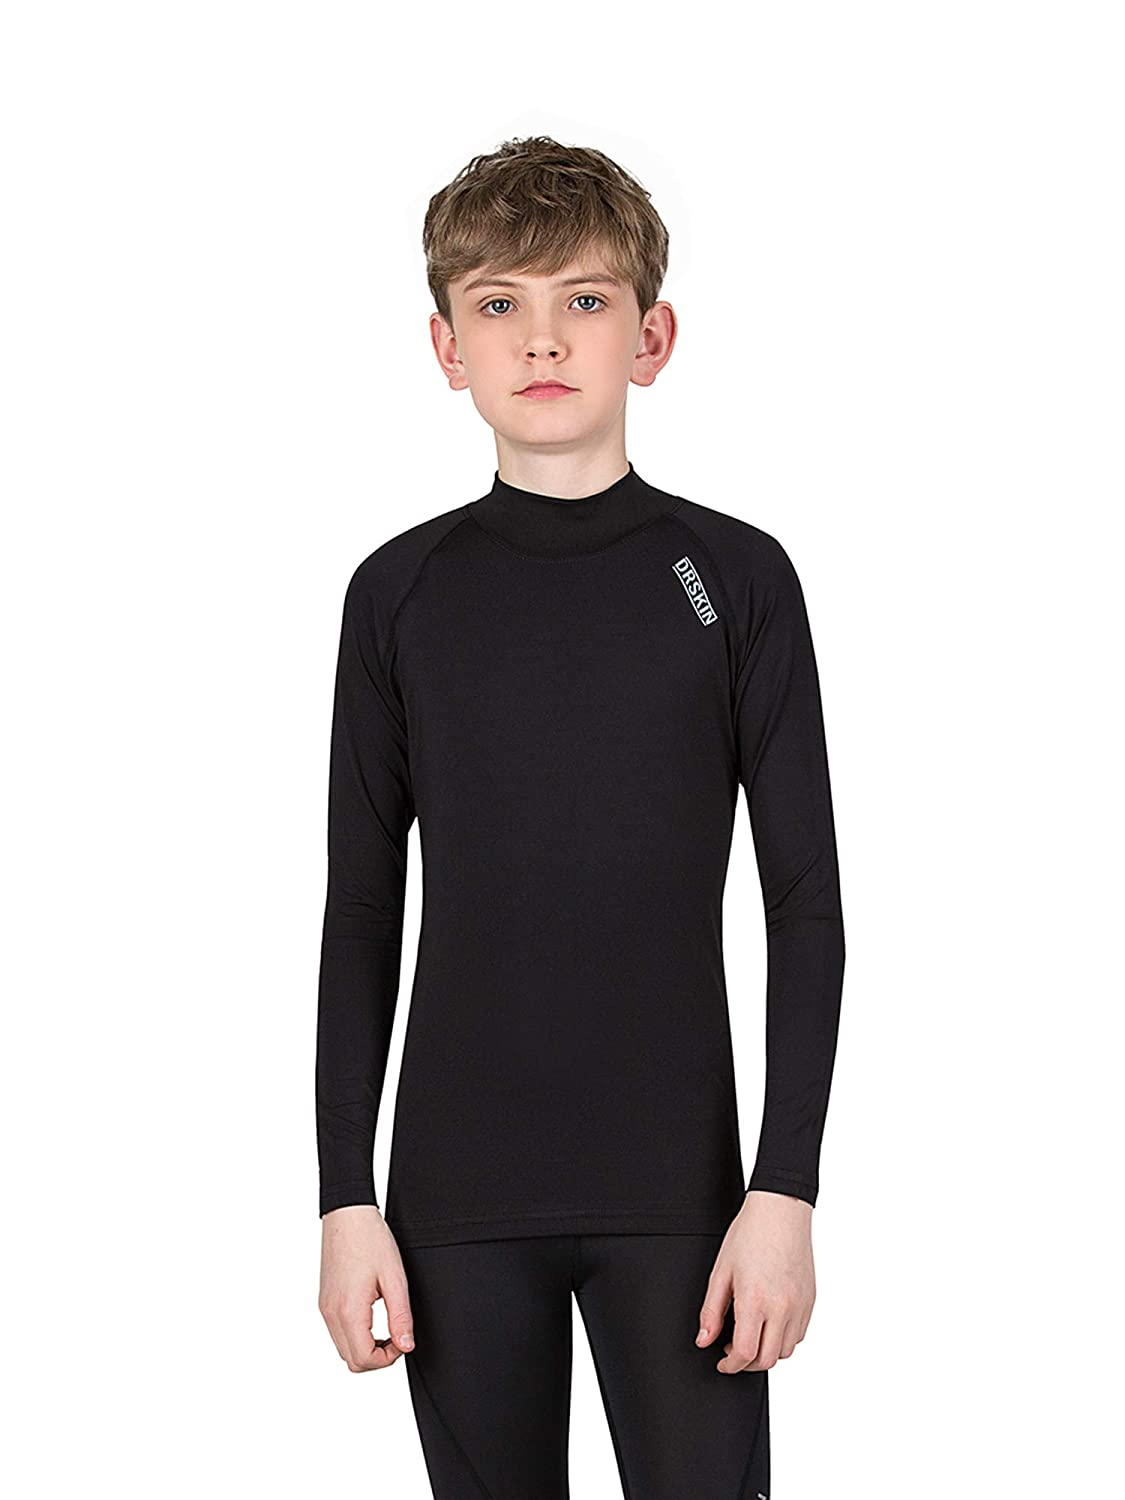 DRSKIN Kids Unisex- Boys /& Girls Long Sleeve Athletic Base Layer Compression Underwear Shirt or Tights